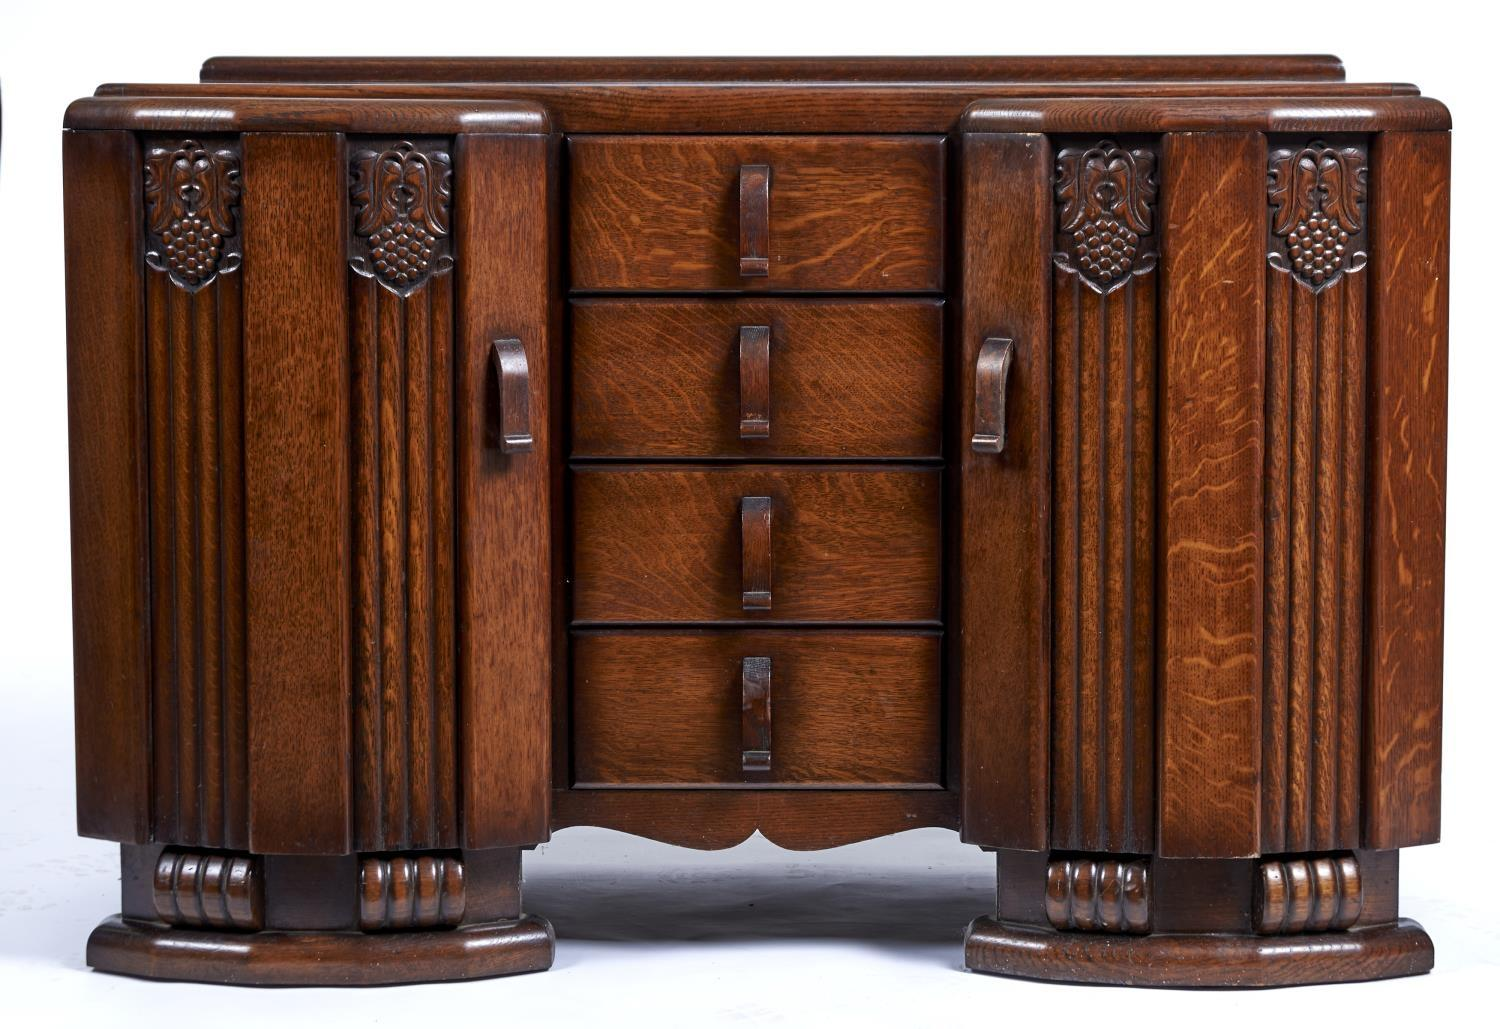 AN ART DECO STYLE OAK SIDEBOARD, C1950, WITH PROJECTING PANELLED FLUTED CUPBOARDS CARVED TO THE